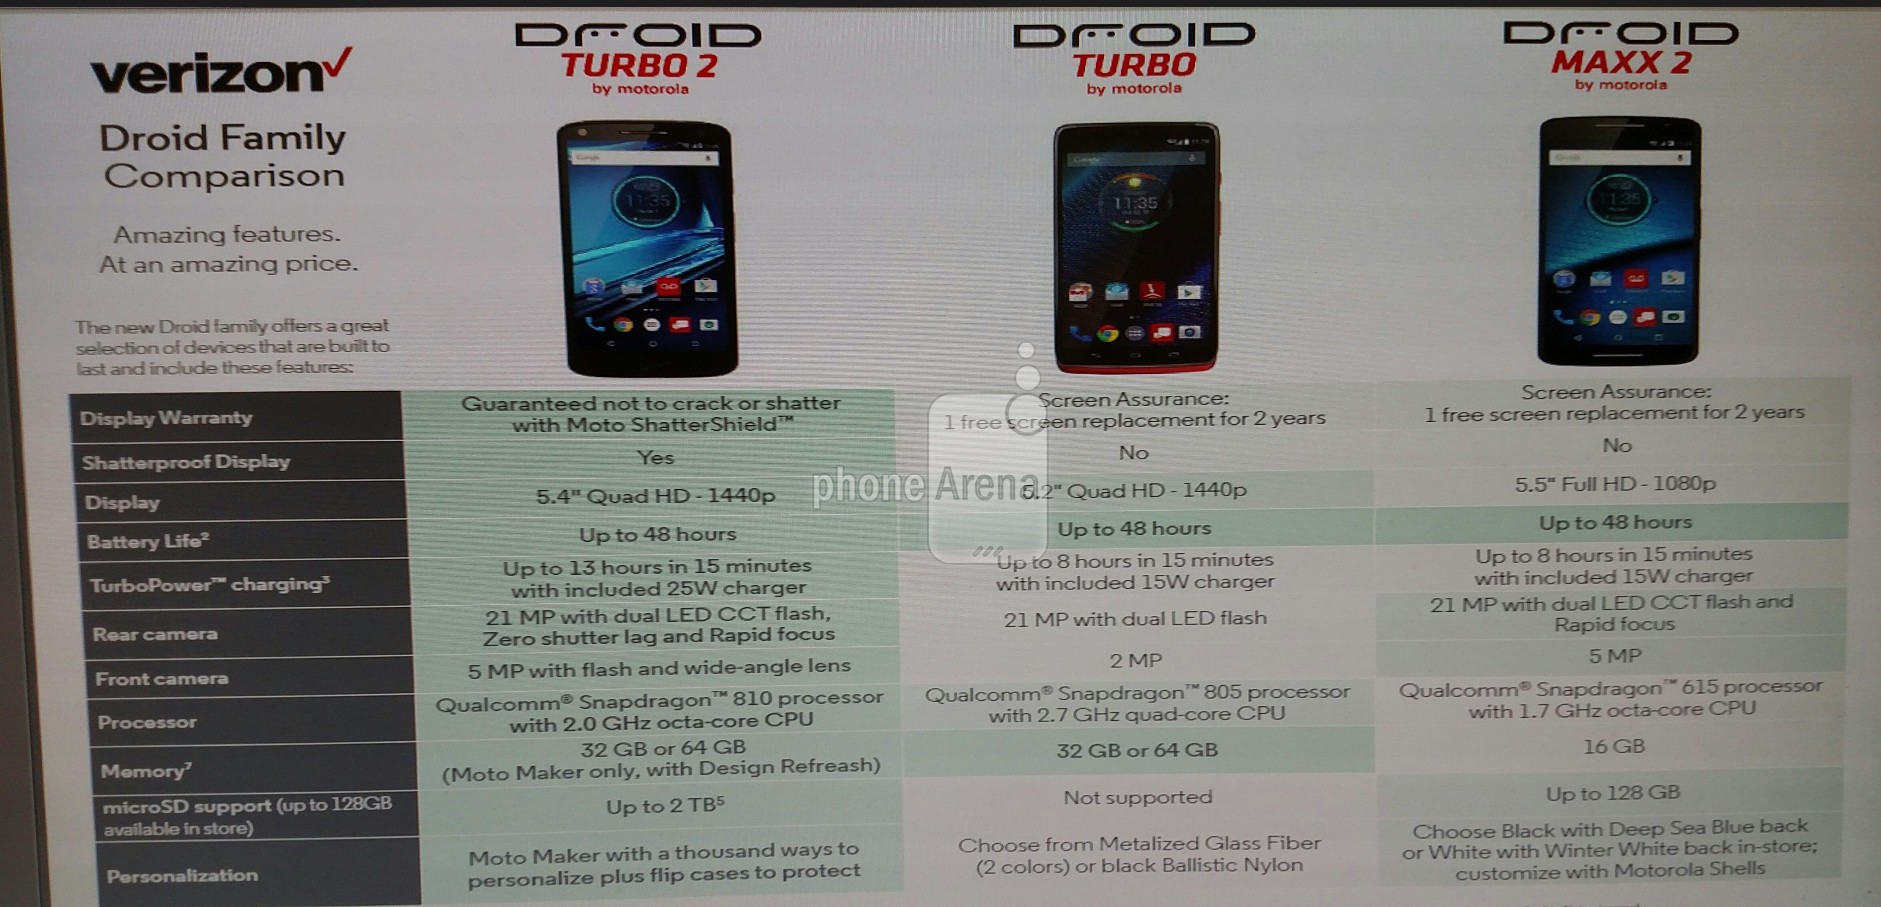 DROID Turbo 2 and DROID Maxx 2 Leaked Specs Confirm MicroSD